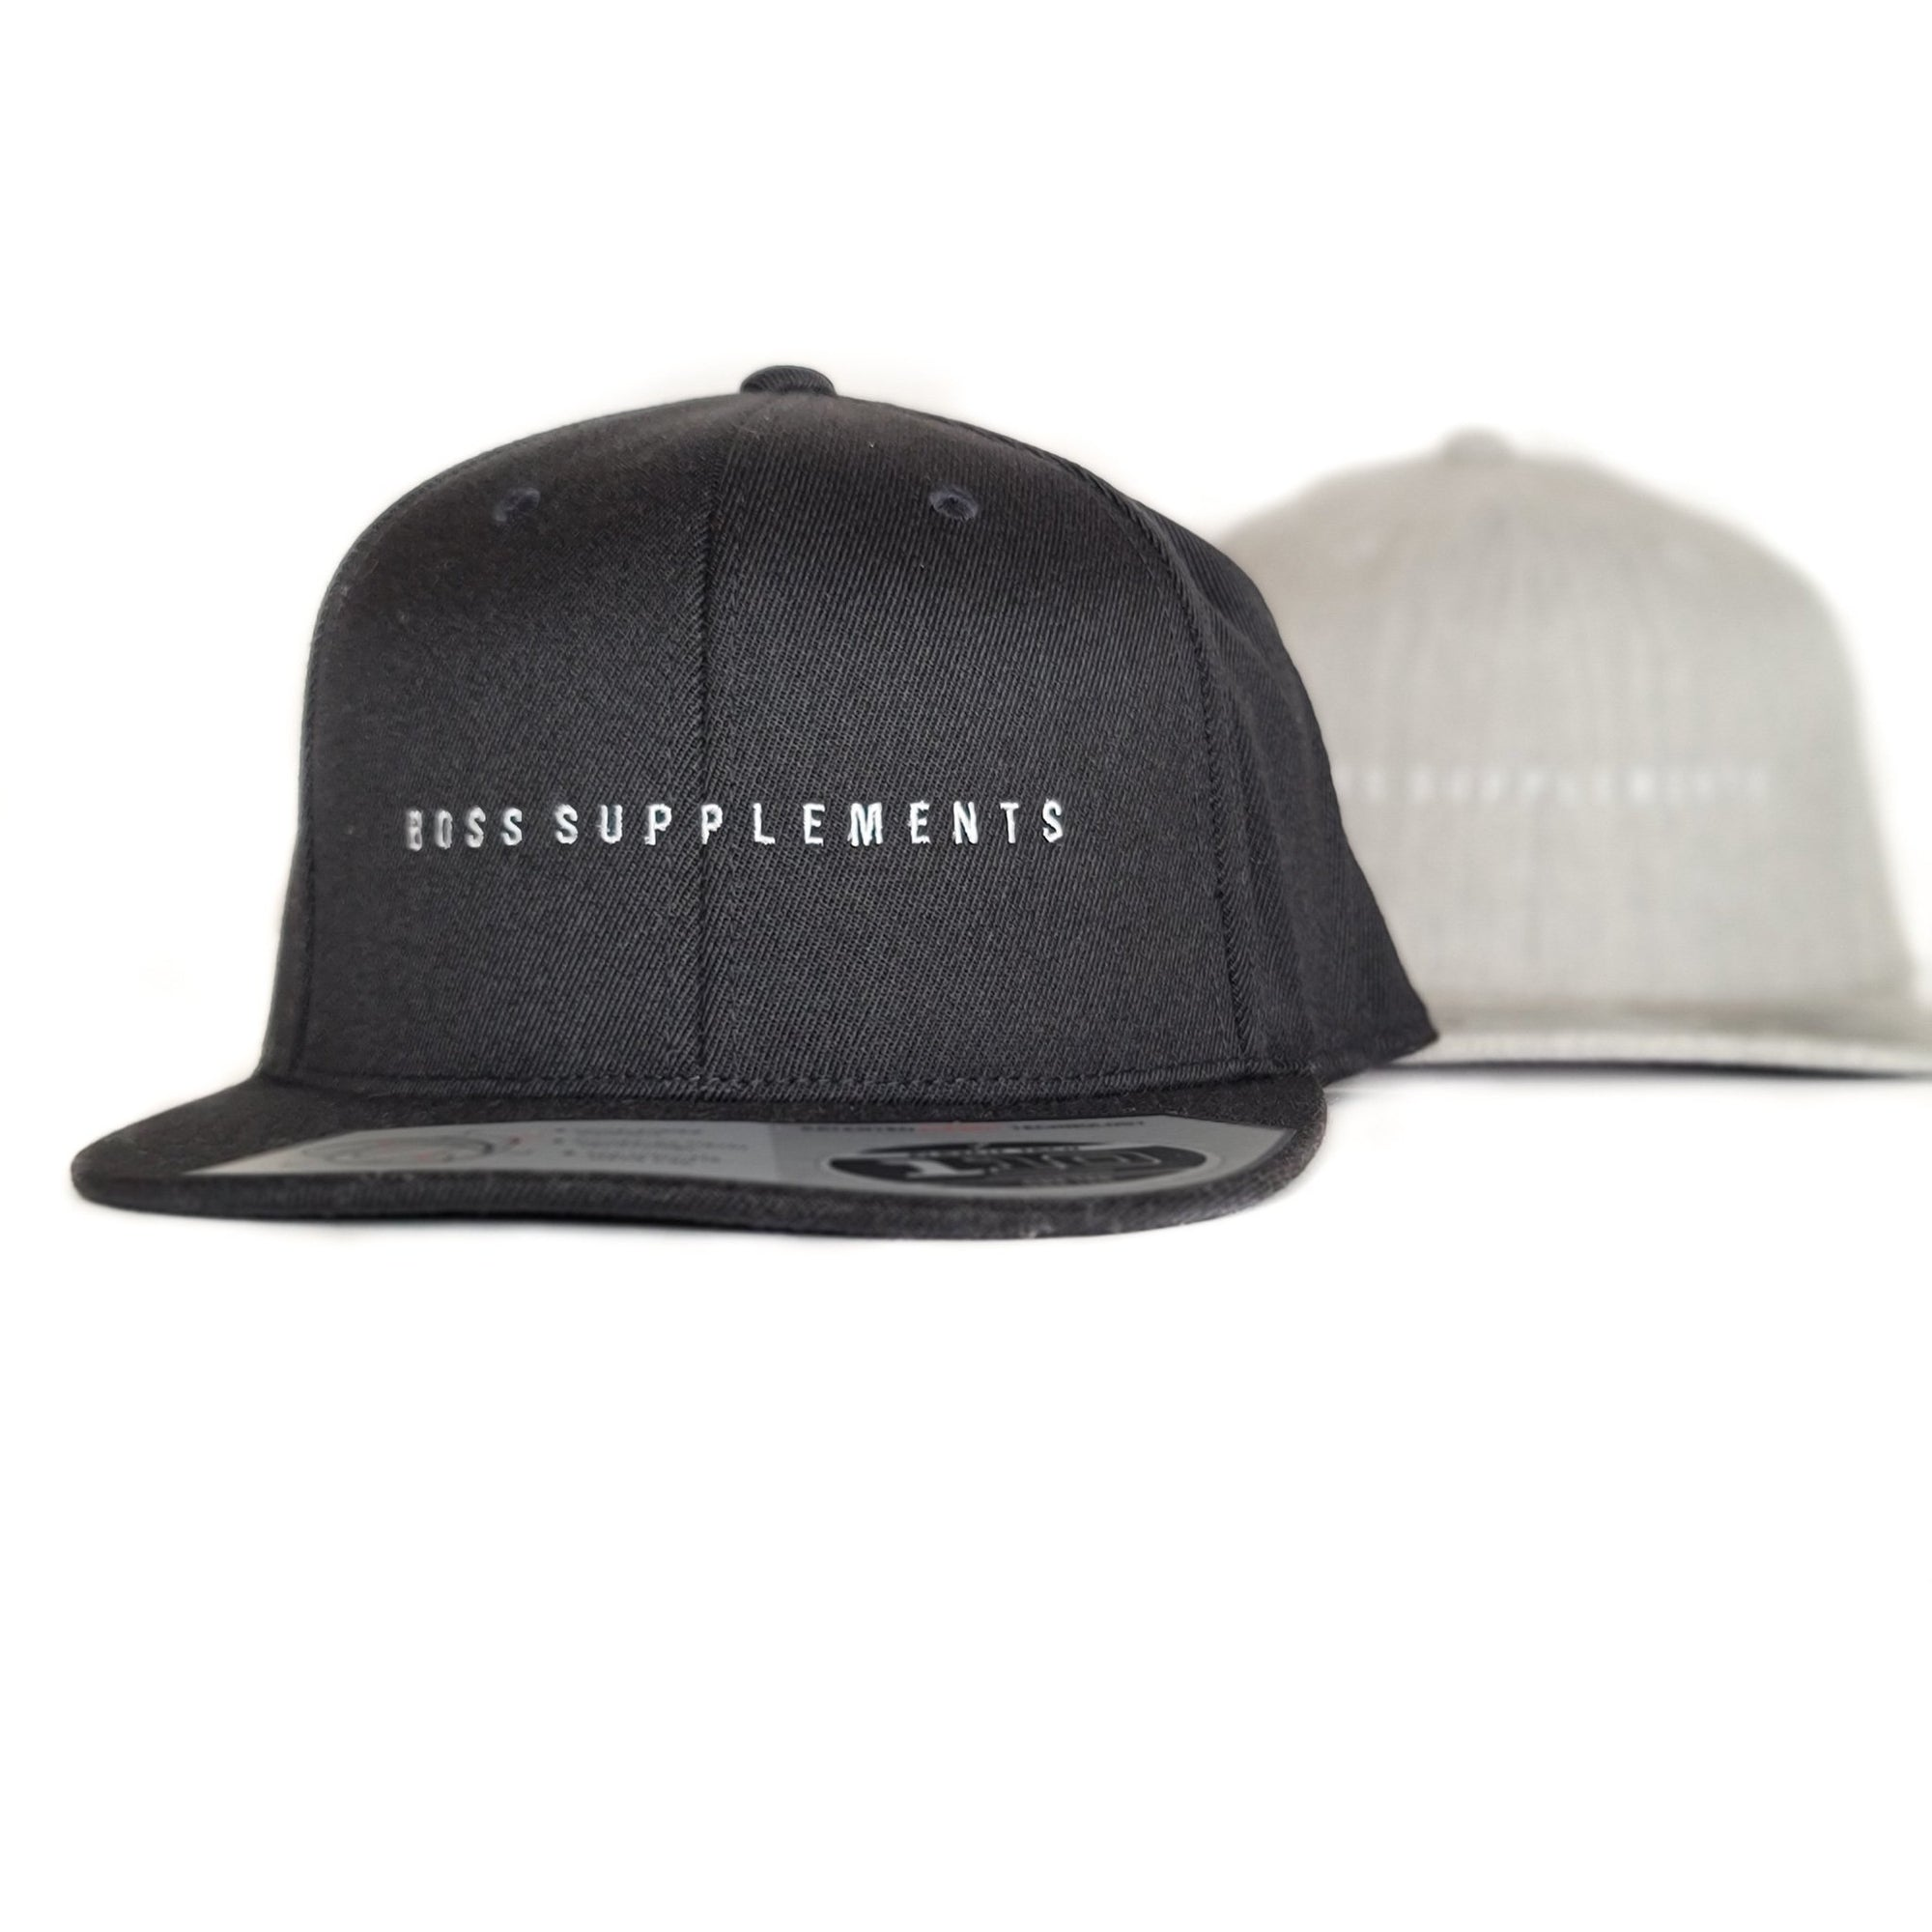 BOSS Supplements Embroidered Snapback